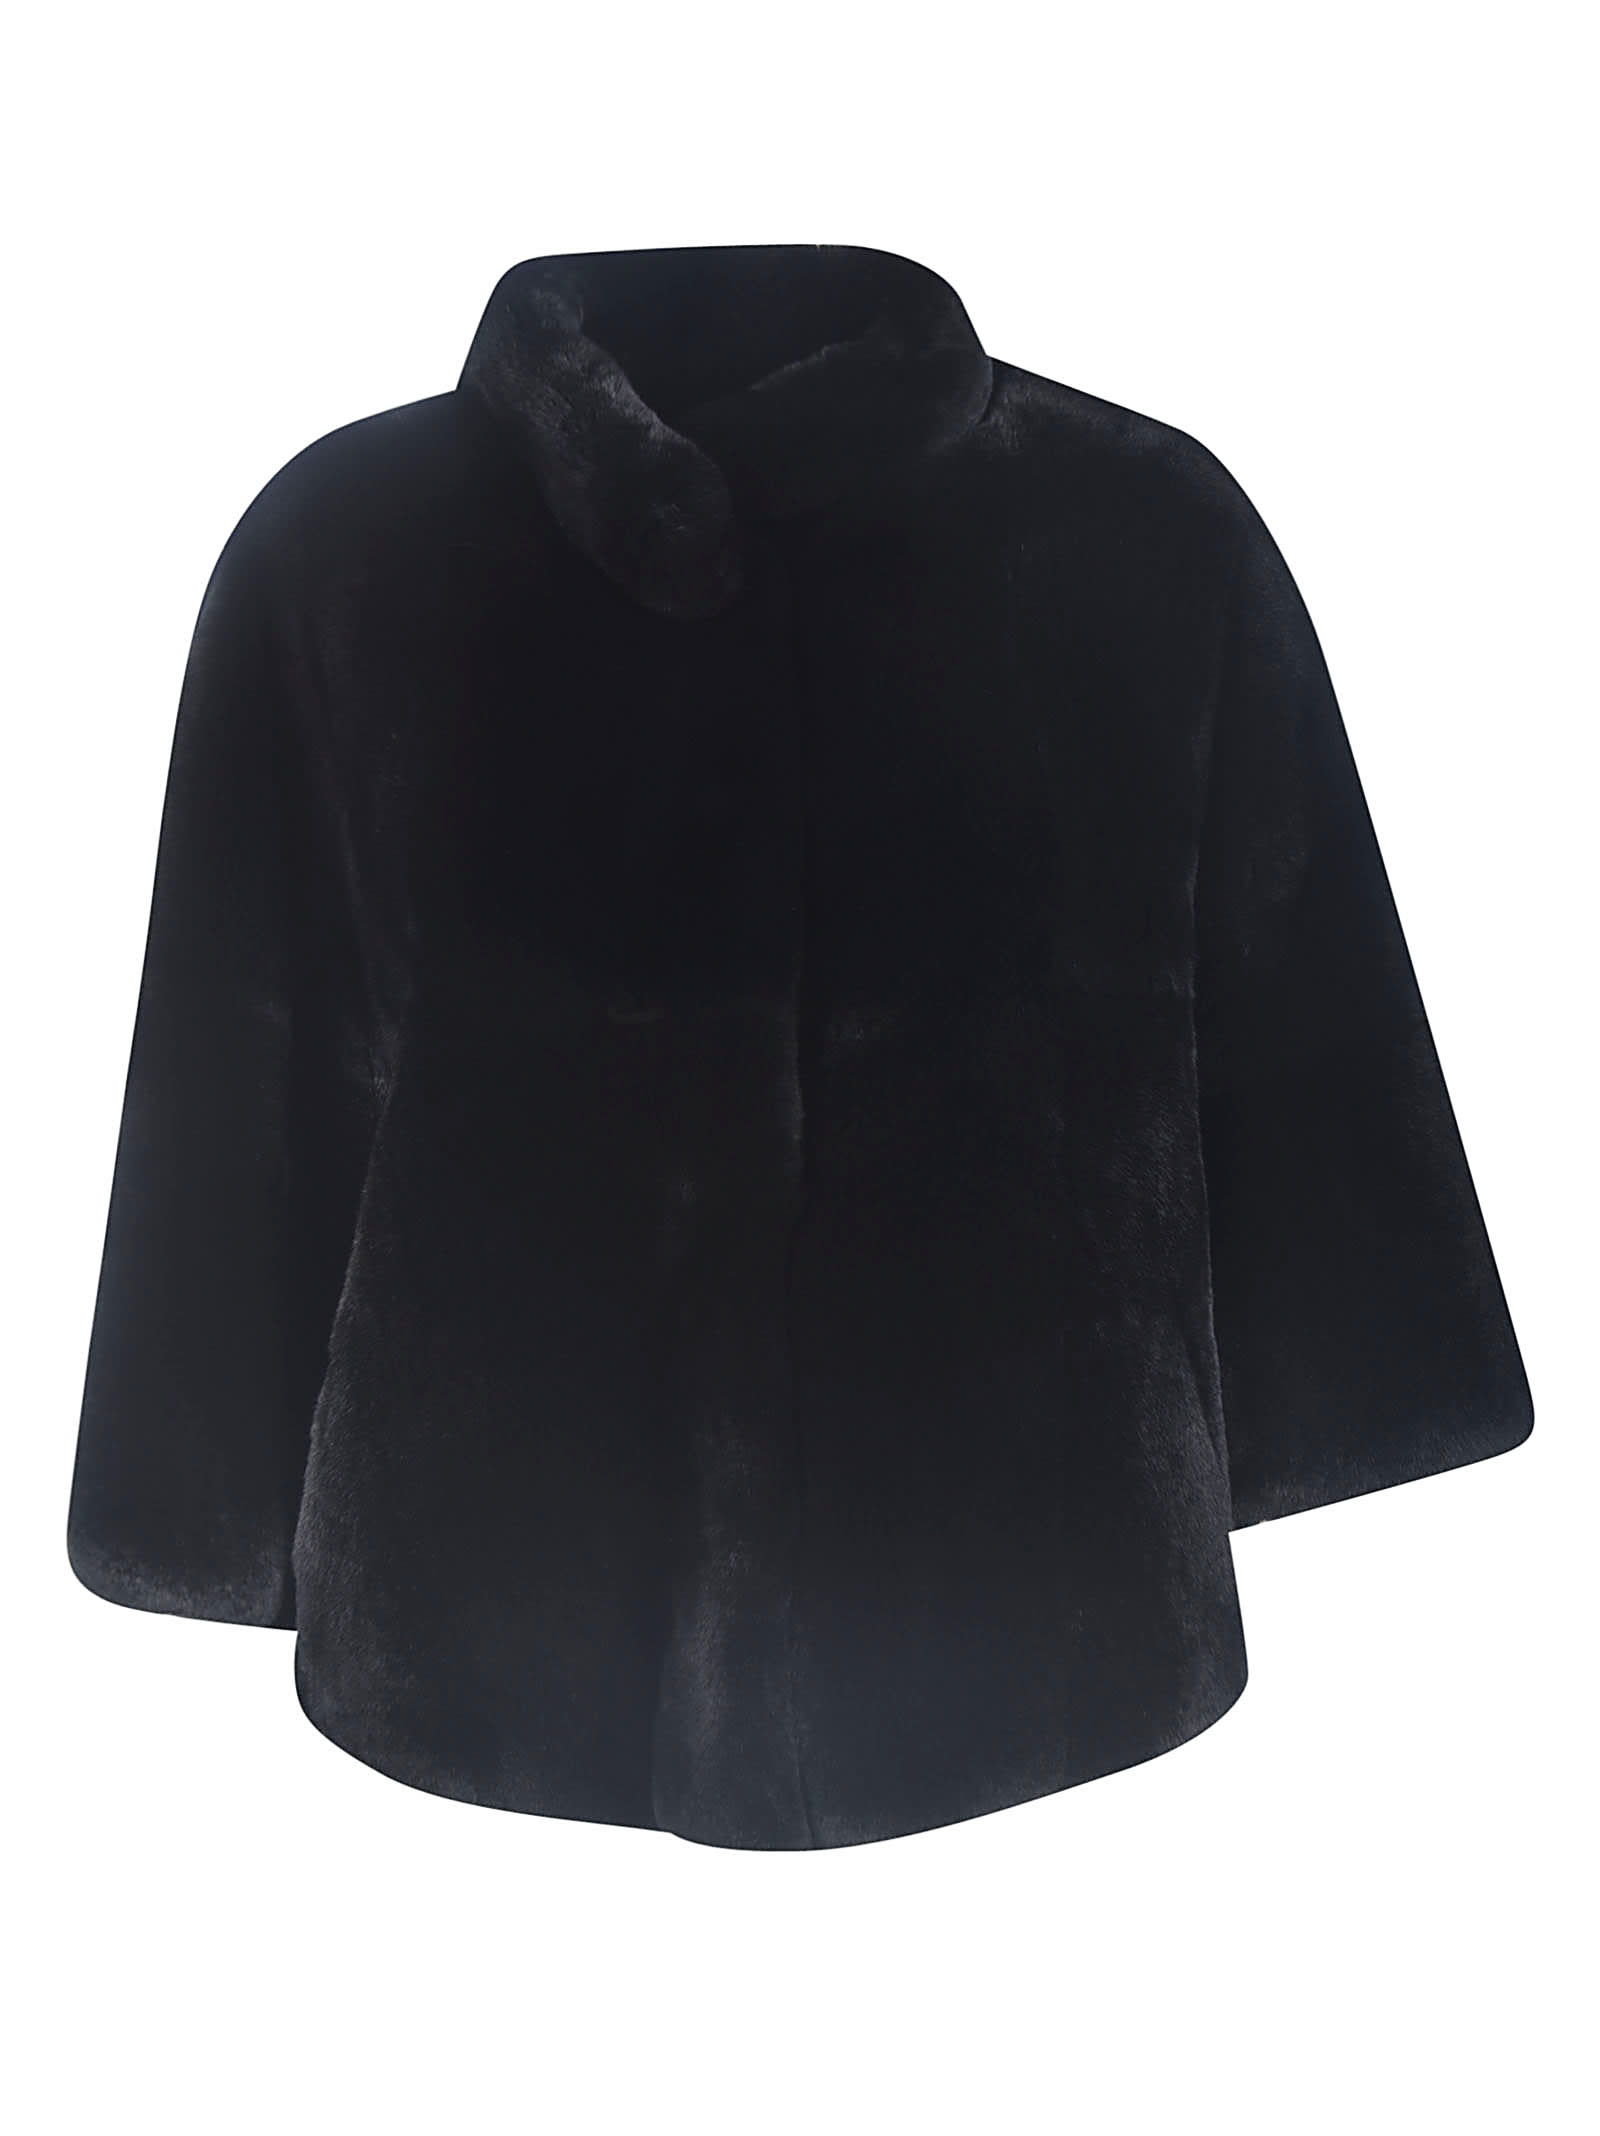 S.W.O.R.D 6.6.44 Stand Up Collar Coat